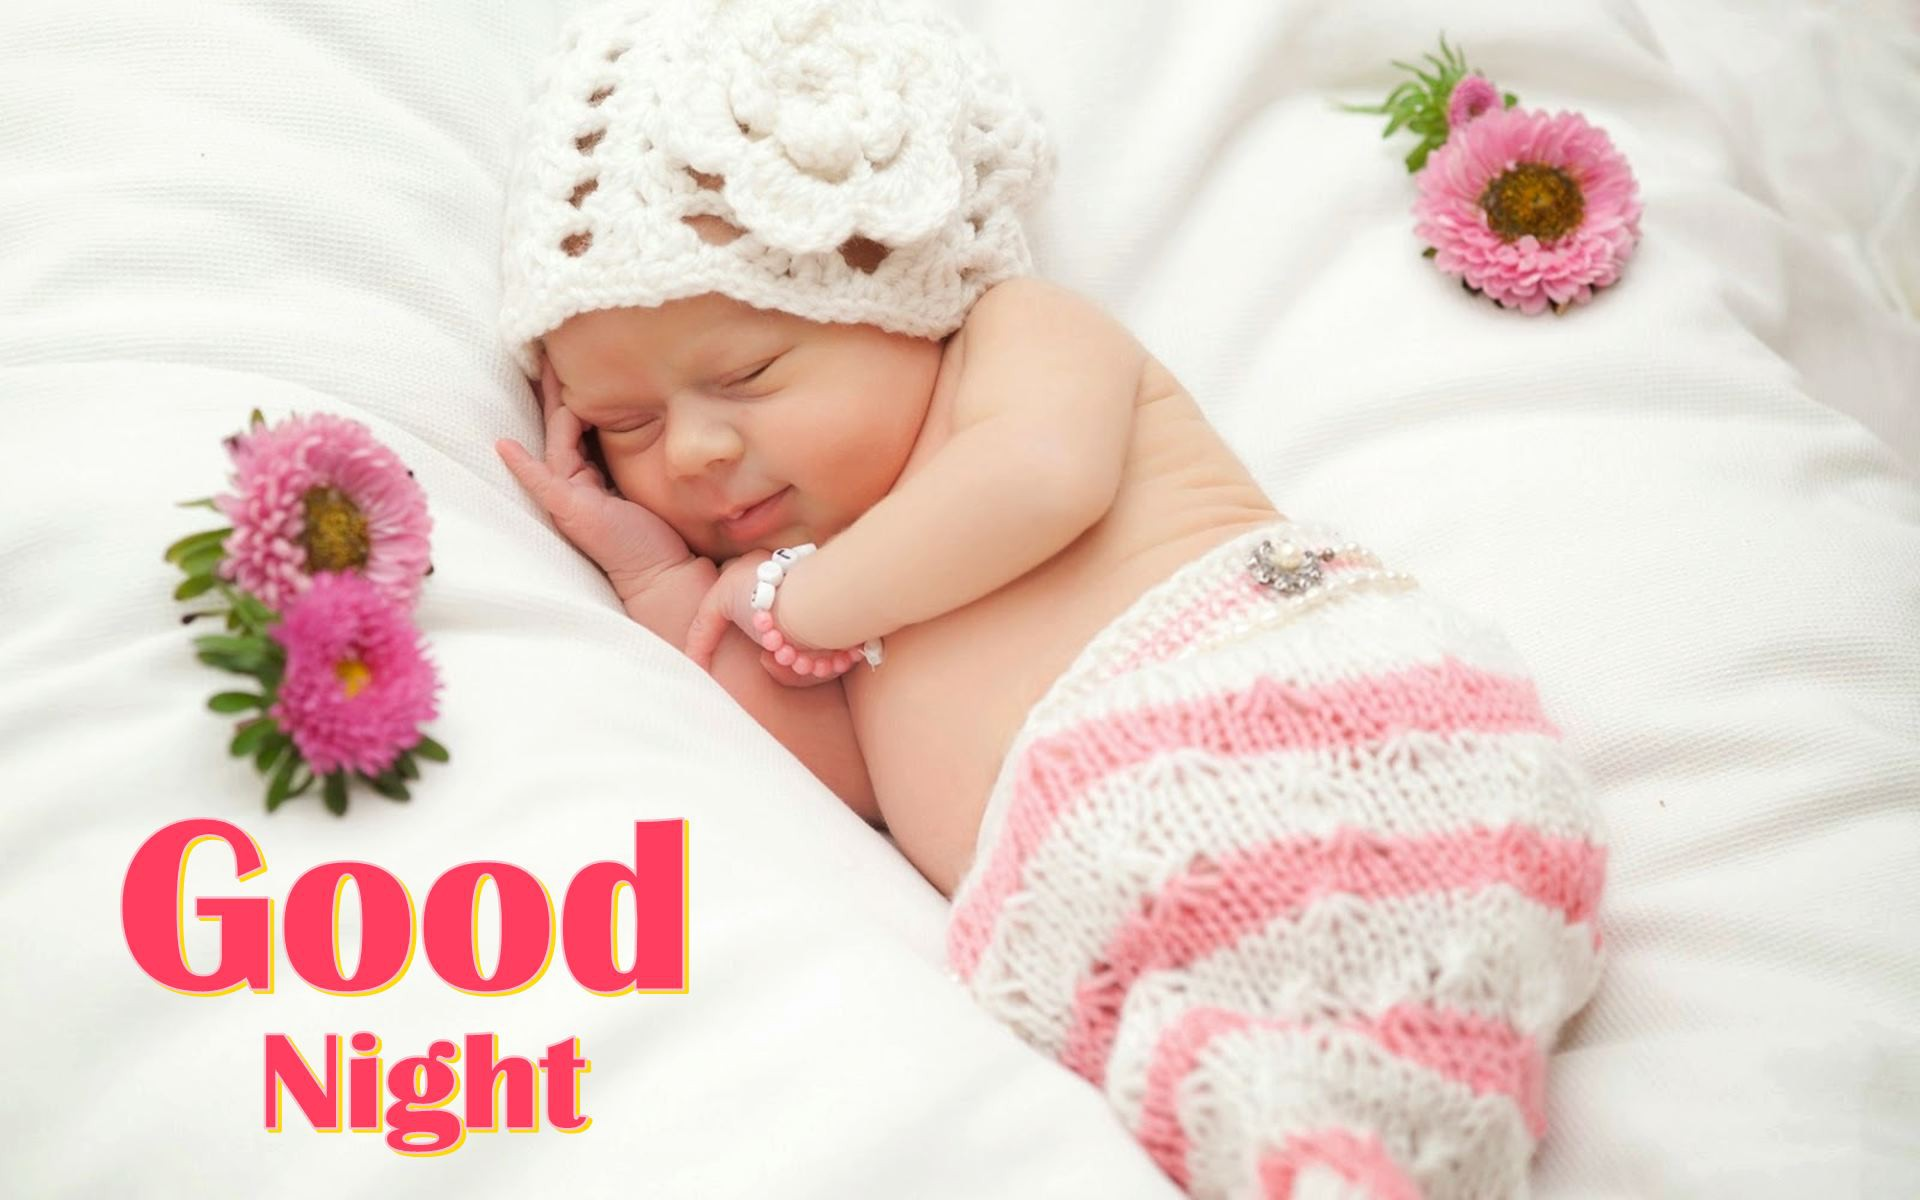 Baby Good Night Wallpaper